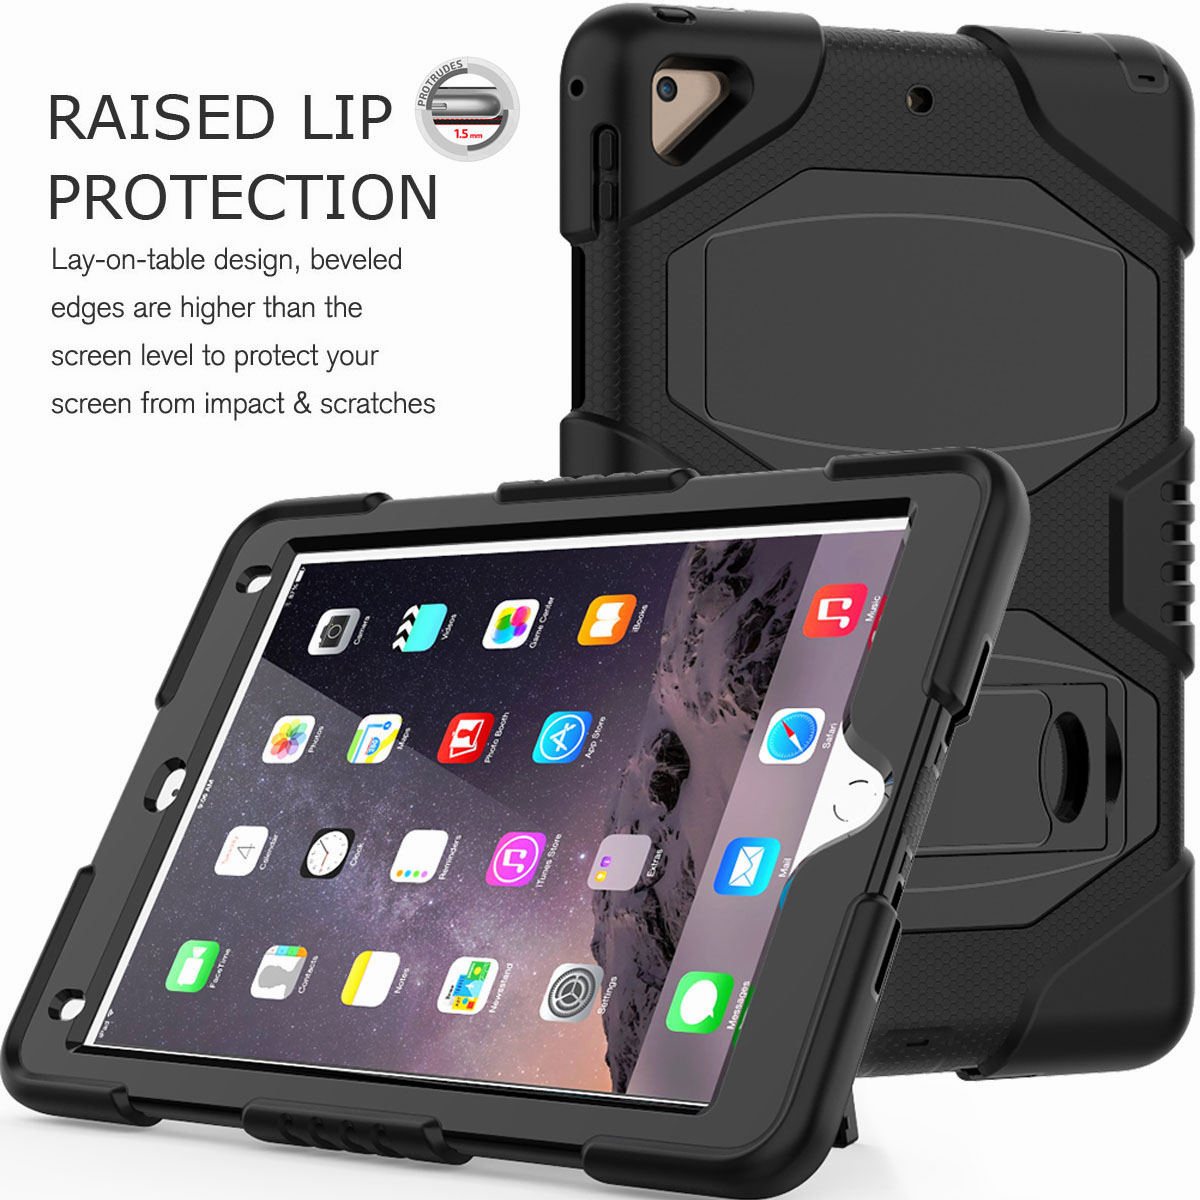 Hybrid-Rubber-Heavy-Duty-Shockproof-Case-Cover-For-iPad-9-7-6th-Generation-2018 thumbnail 15